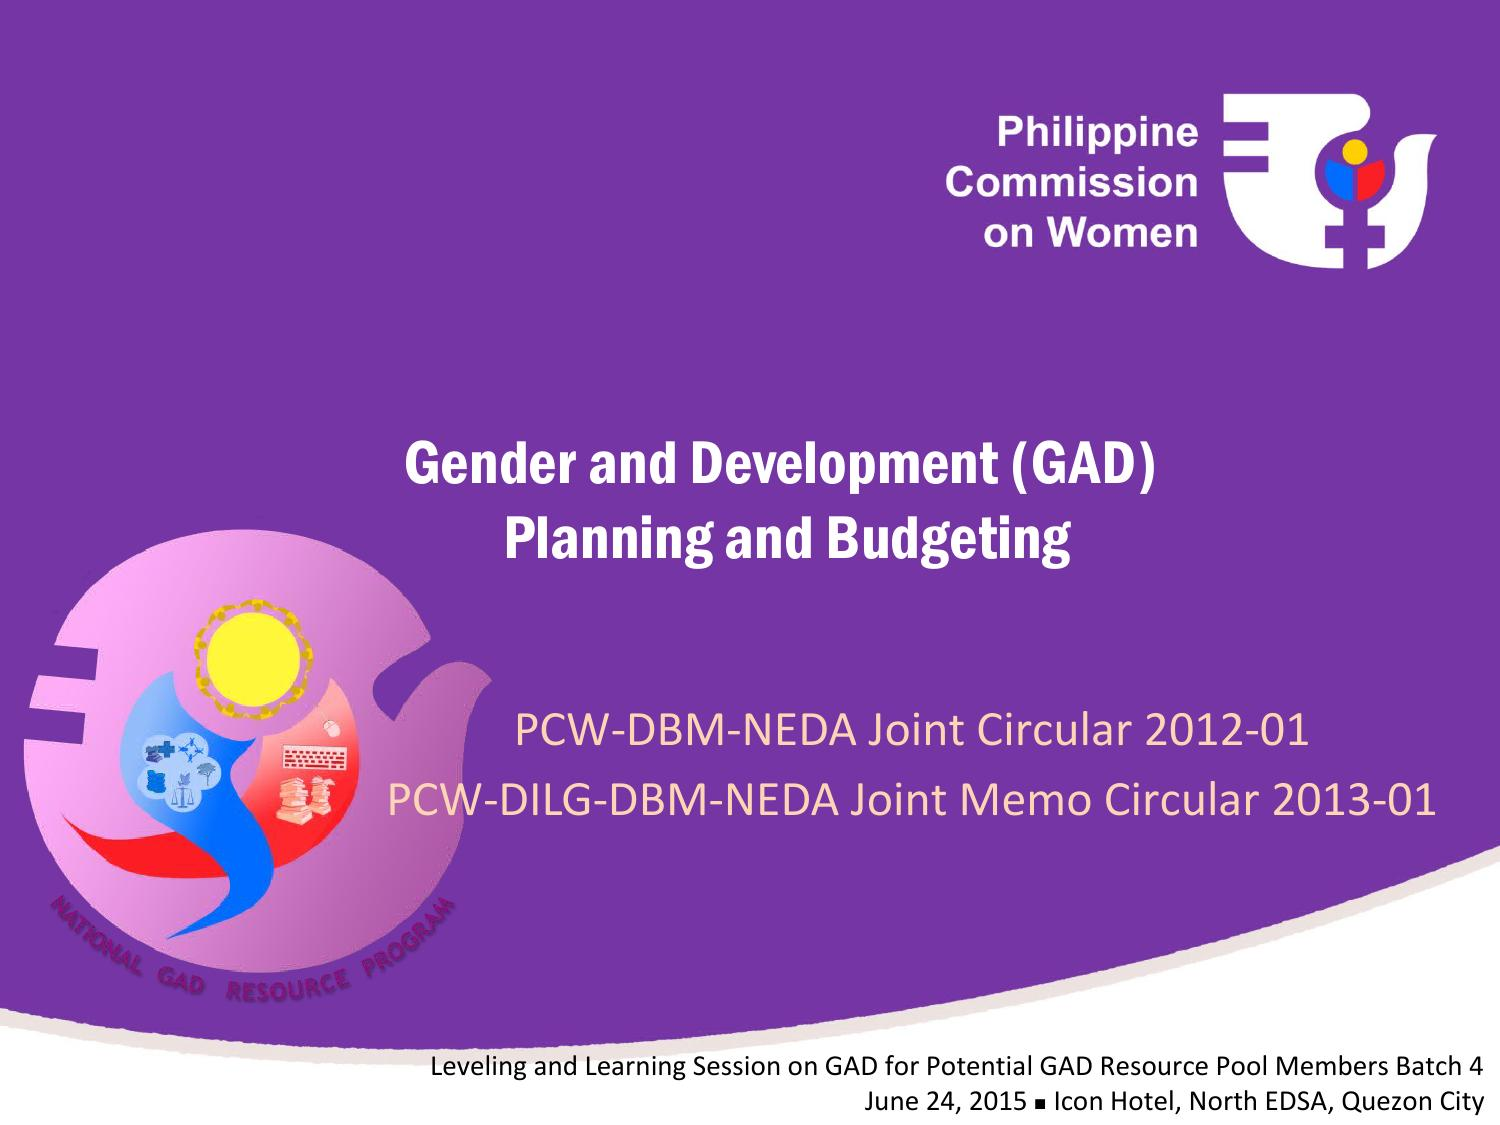 Gad planning and budgeting vjp by kawomenan - issuu